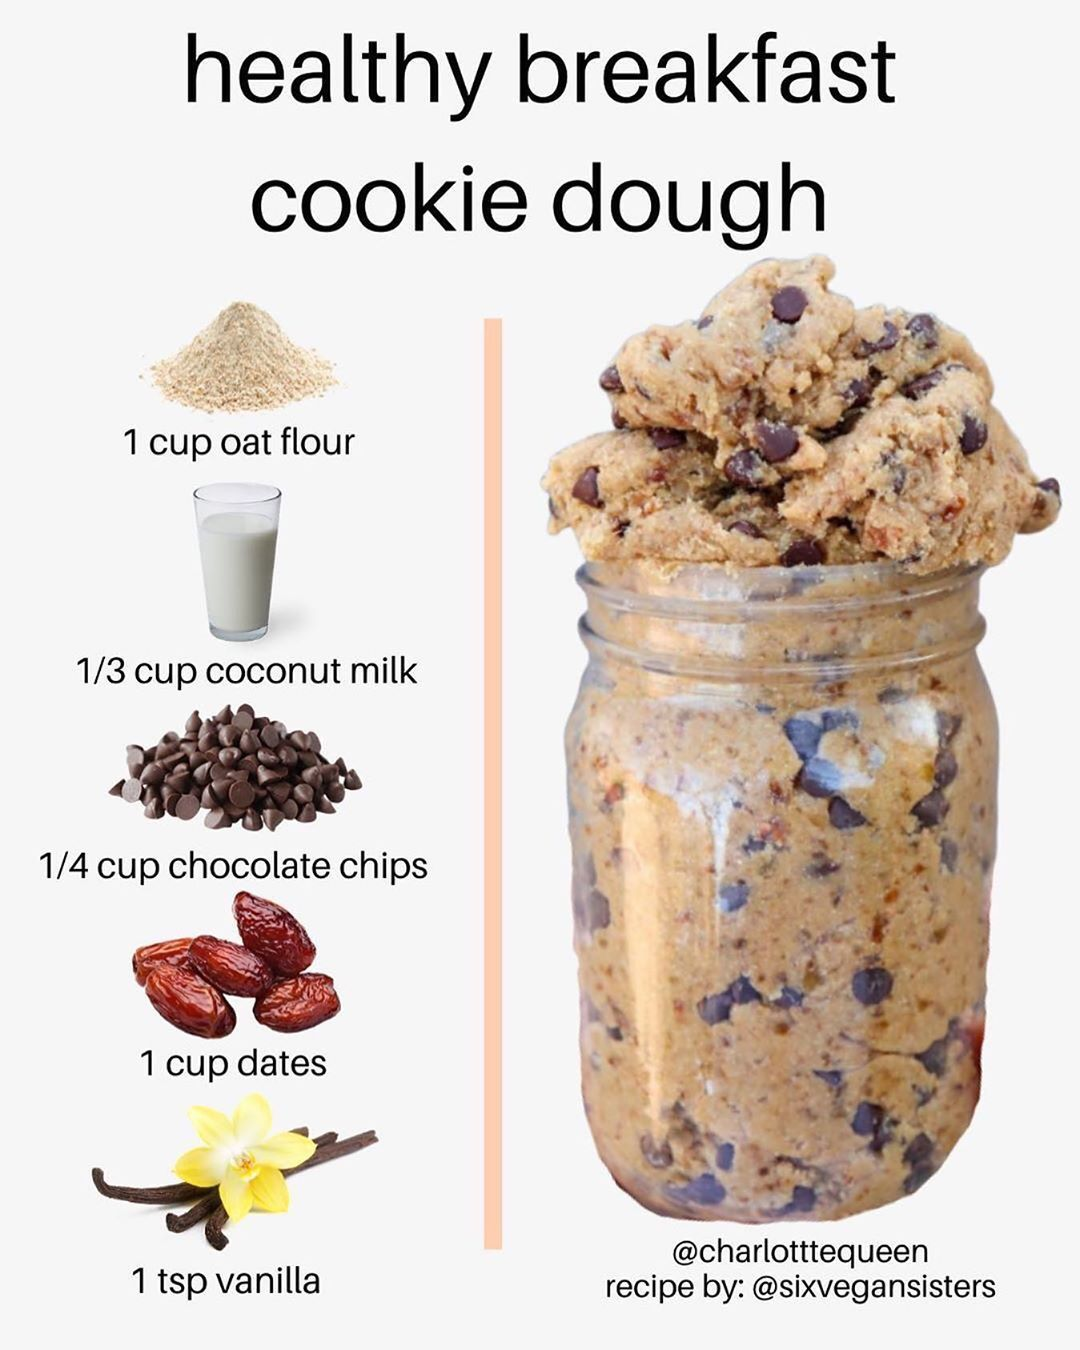 Health Nutrition Facts On Instagram Who Says Cookie Dough